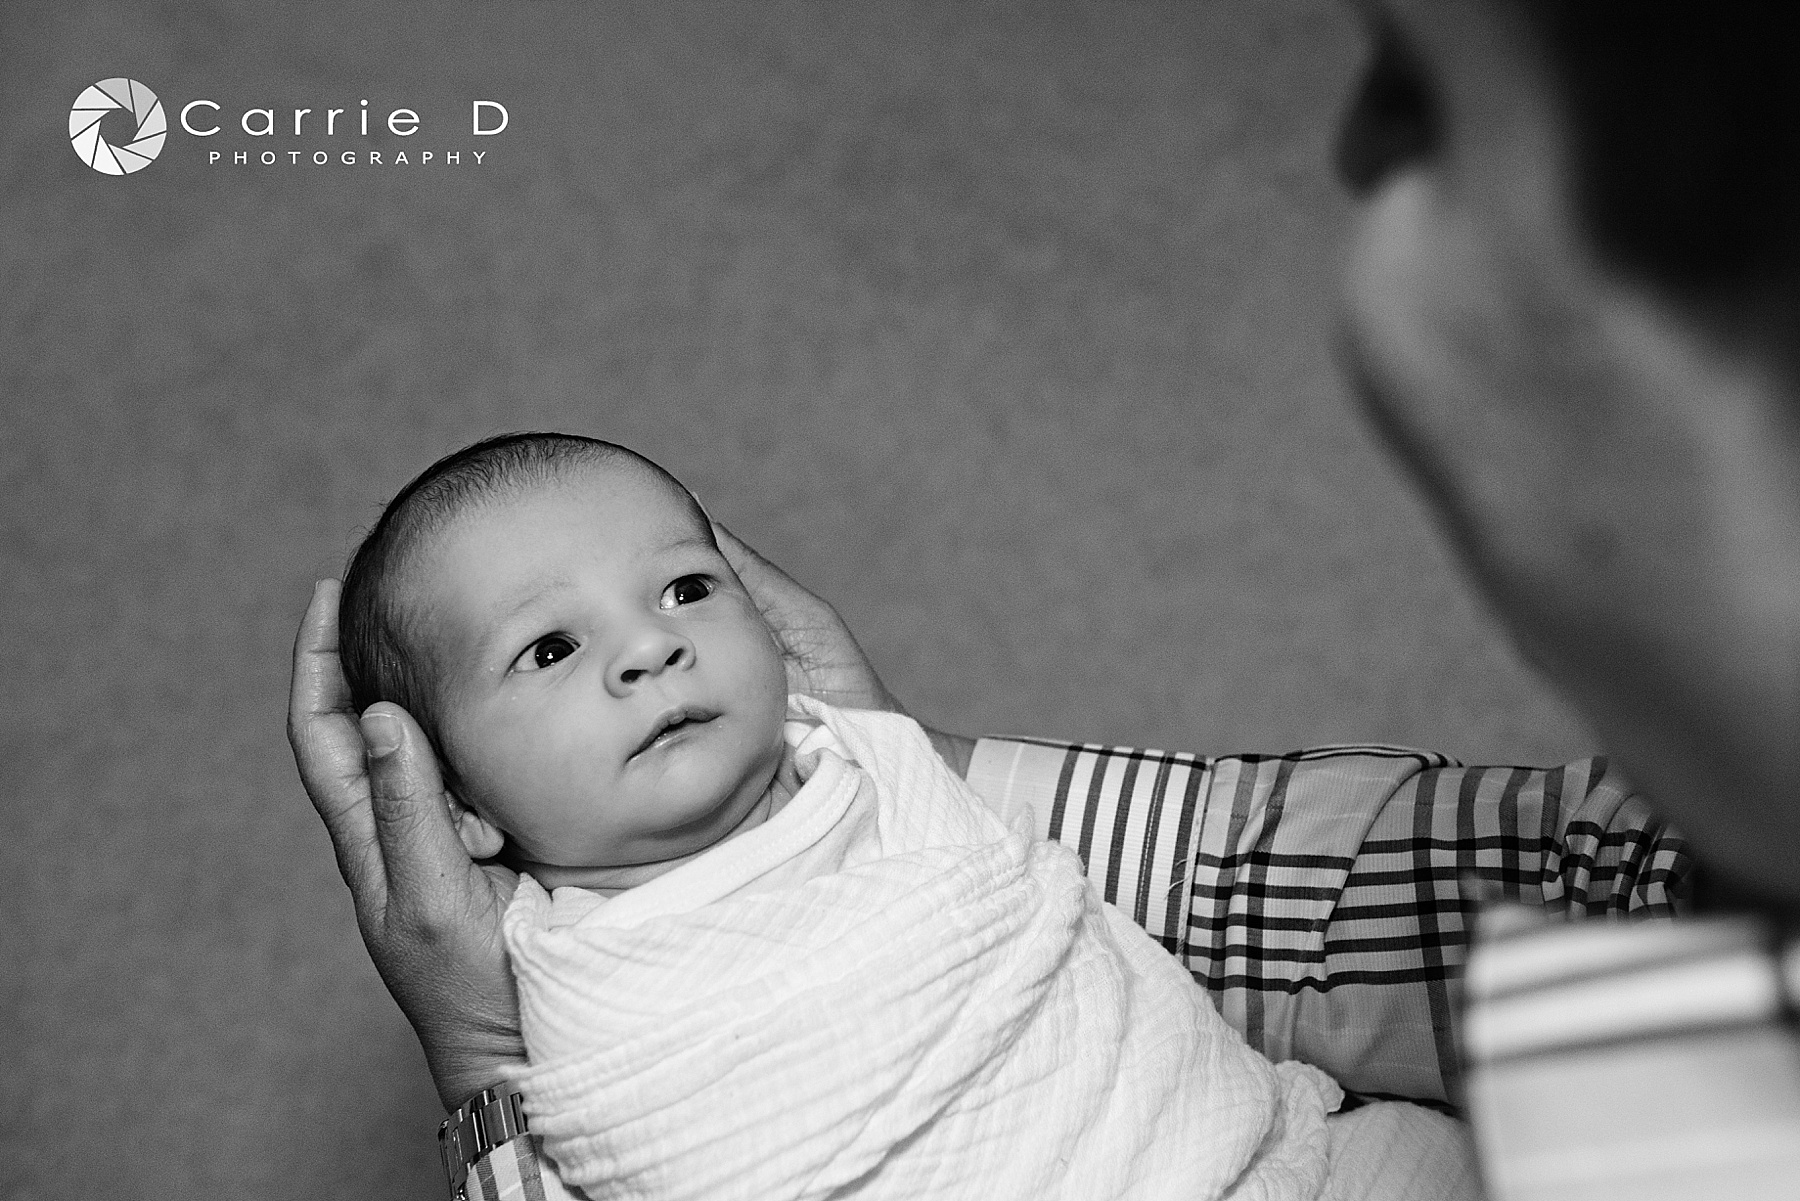 Baltimore Photographer – Baltimore Portrait Photographer – Baltimore Family Photographer - Baltimore Newborn Photographer – Baltimore Infant Photographer – Baltimore Sibling Photographer – Baltimore Natural Light Photographer – Baltimore Lifestyle Photographer – Baltimore Natural Light Portrait - Maryland Photographer – Maryland Portrait Photographer – Maryland Family Photographer - Maryland Newborn Photographer – Maryland Infant Photographer – Maryland Sibling Photographer – Maryland Natural Light Photographer – Maryland Lifestyle Photographer – Maryland Natural Light Portrait  - Bethesda Photographer – Bethesda Portrait Photographer – Bethesda Family Photographer - Bethesda Newborn Photographer – Bethesda Infant Photographer – Bethesda Sibling Photographer – Bethesda Natural Light Photographer – Bethesda Lifestyle Photographer – Bethesda Natural Light Portrait Photographer - 2014-06-06_0013